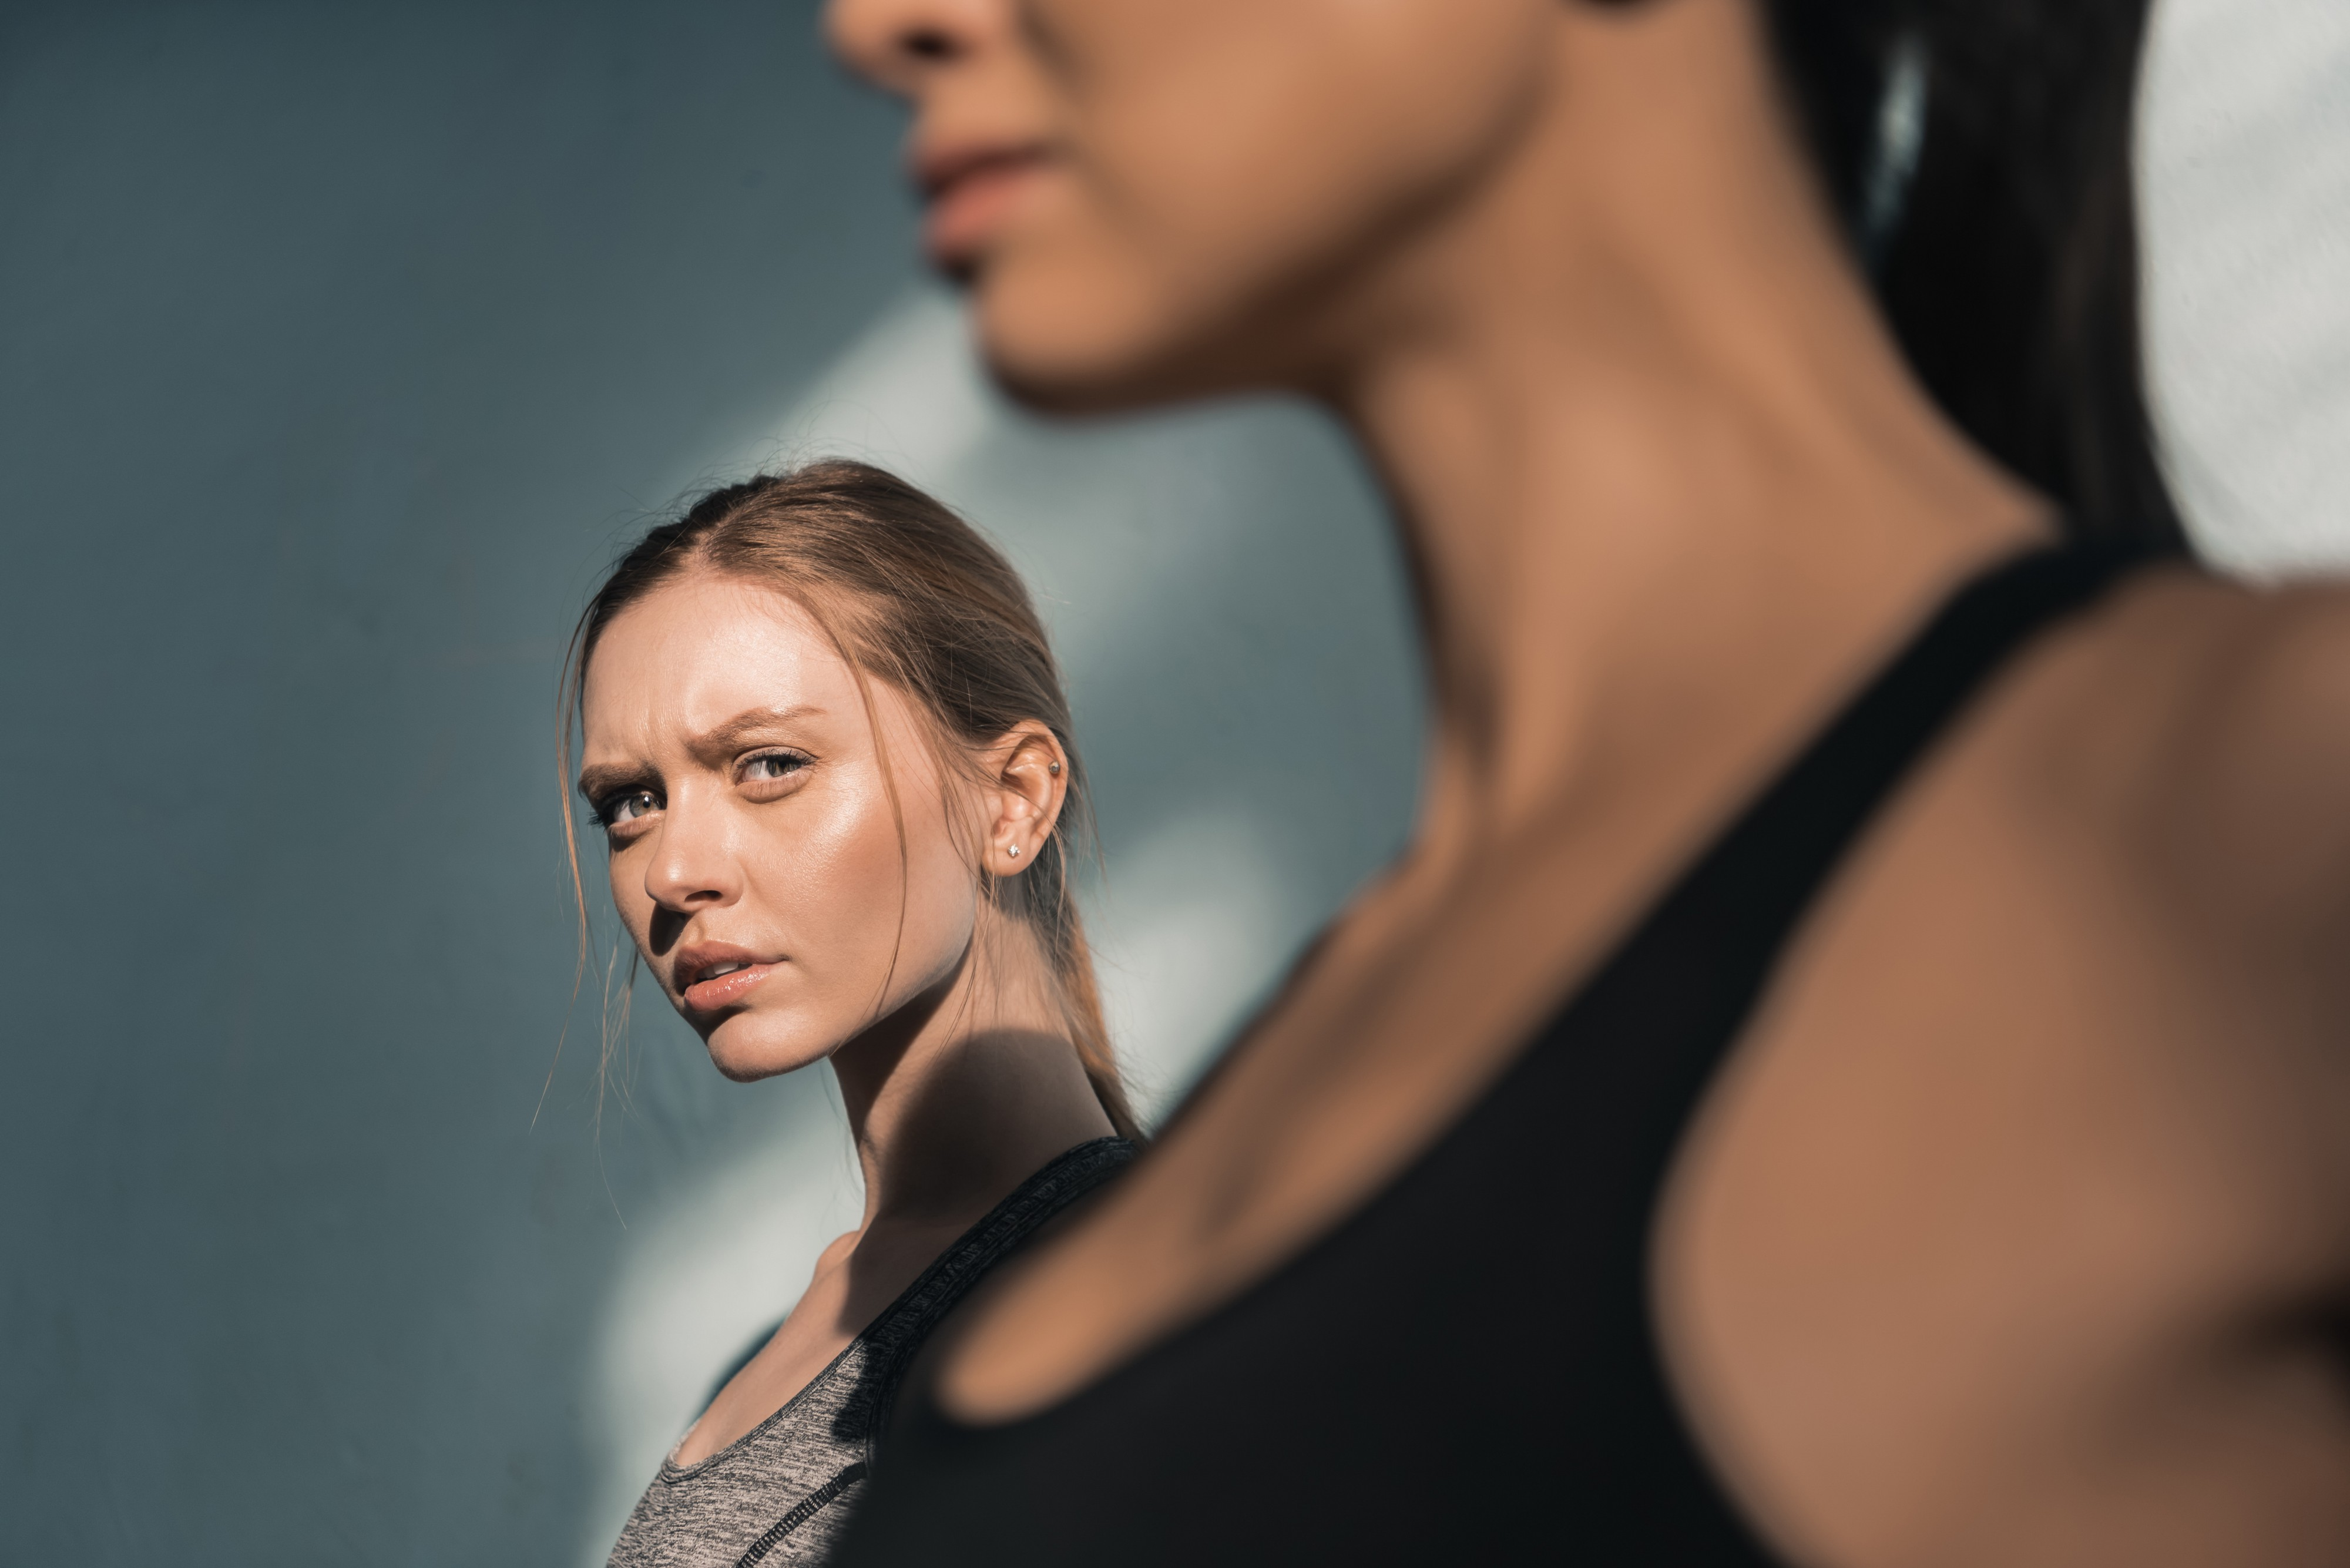 A woman stares suspiciously at her friend as they work out together.